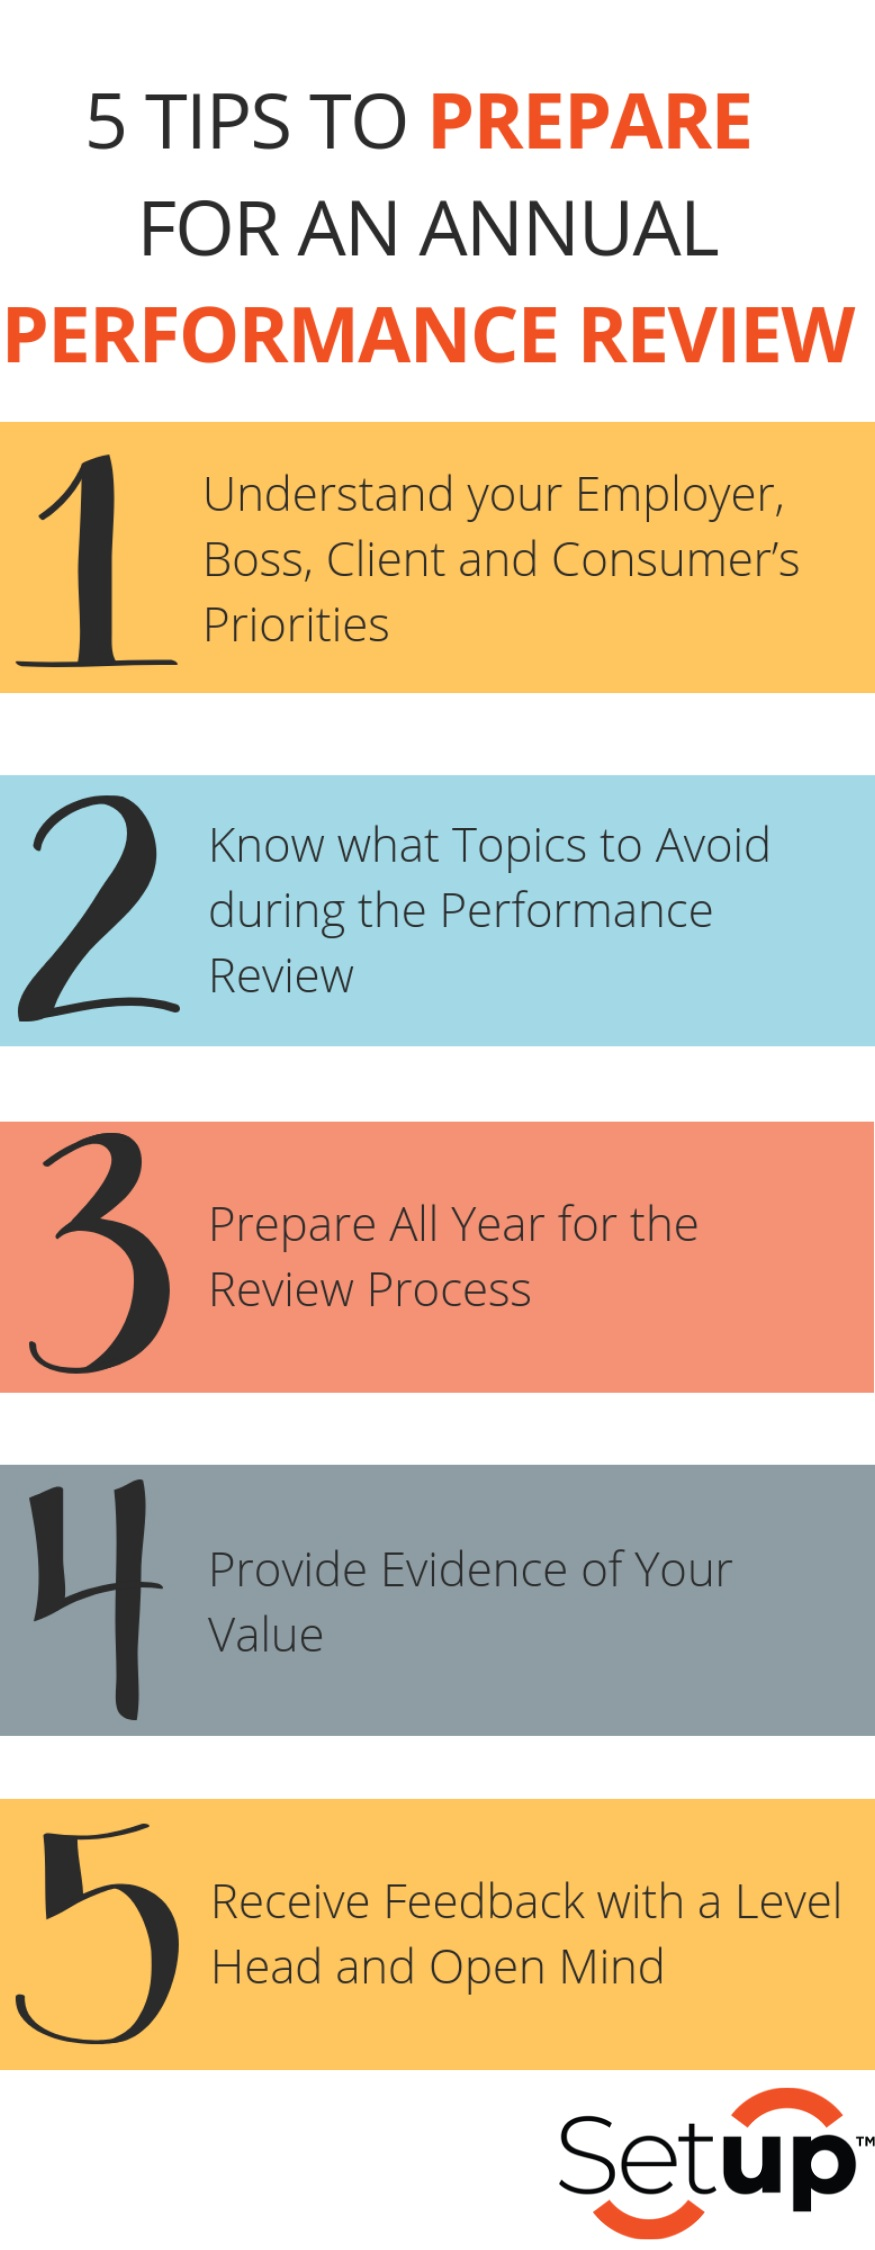 5 tips to prepare for an annual performance review.